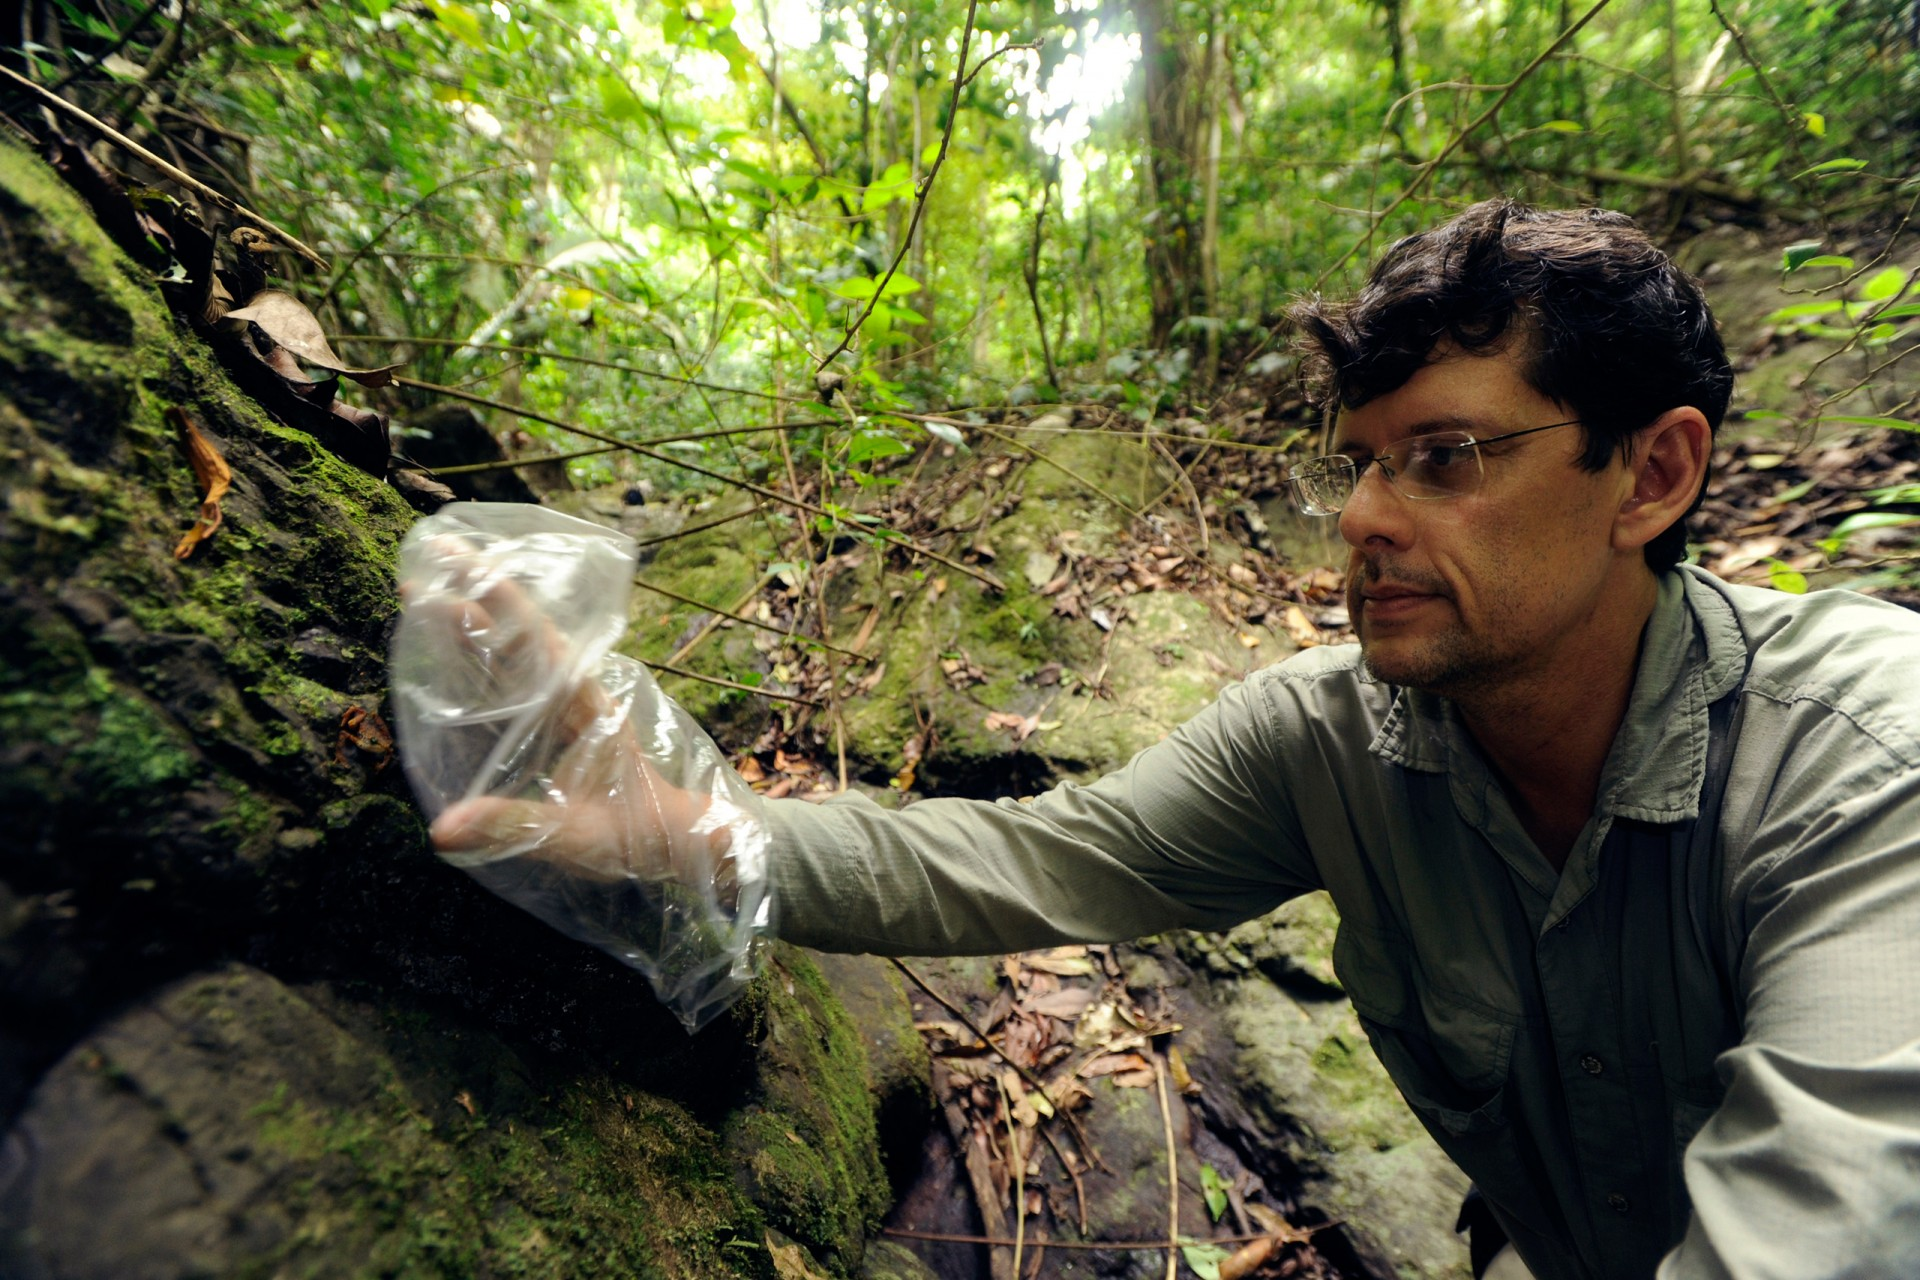 Roberto Ibañez, collecting frogs for captive breeding